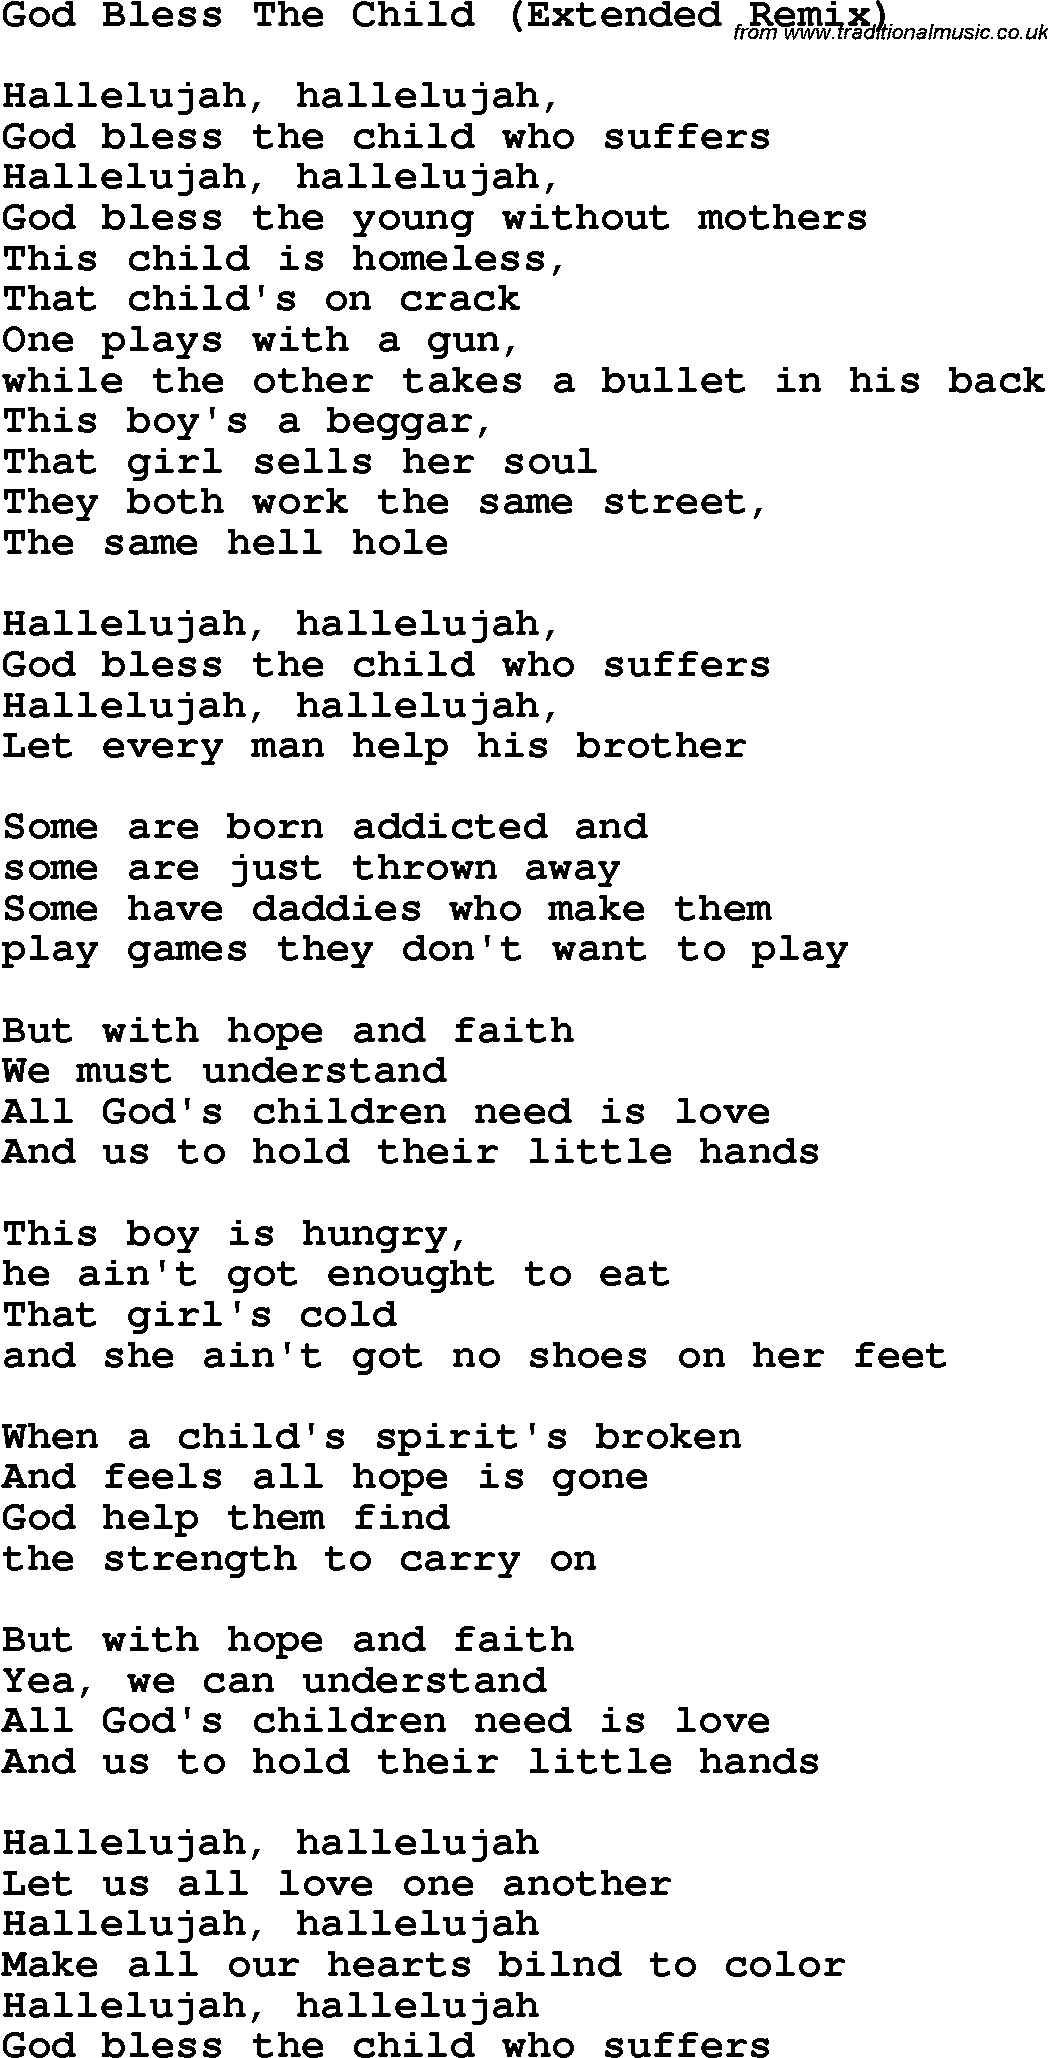 god bless the child lyrics: